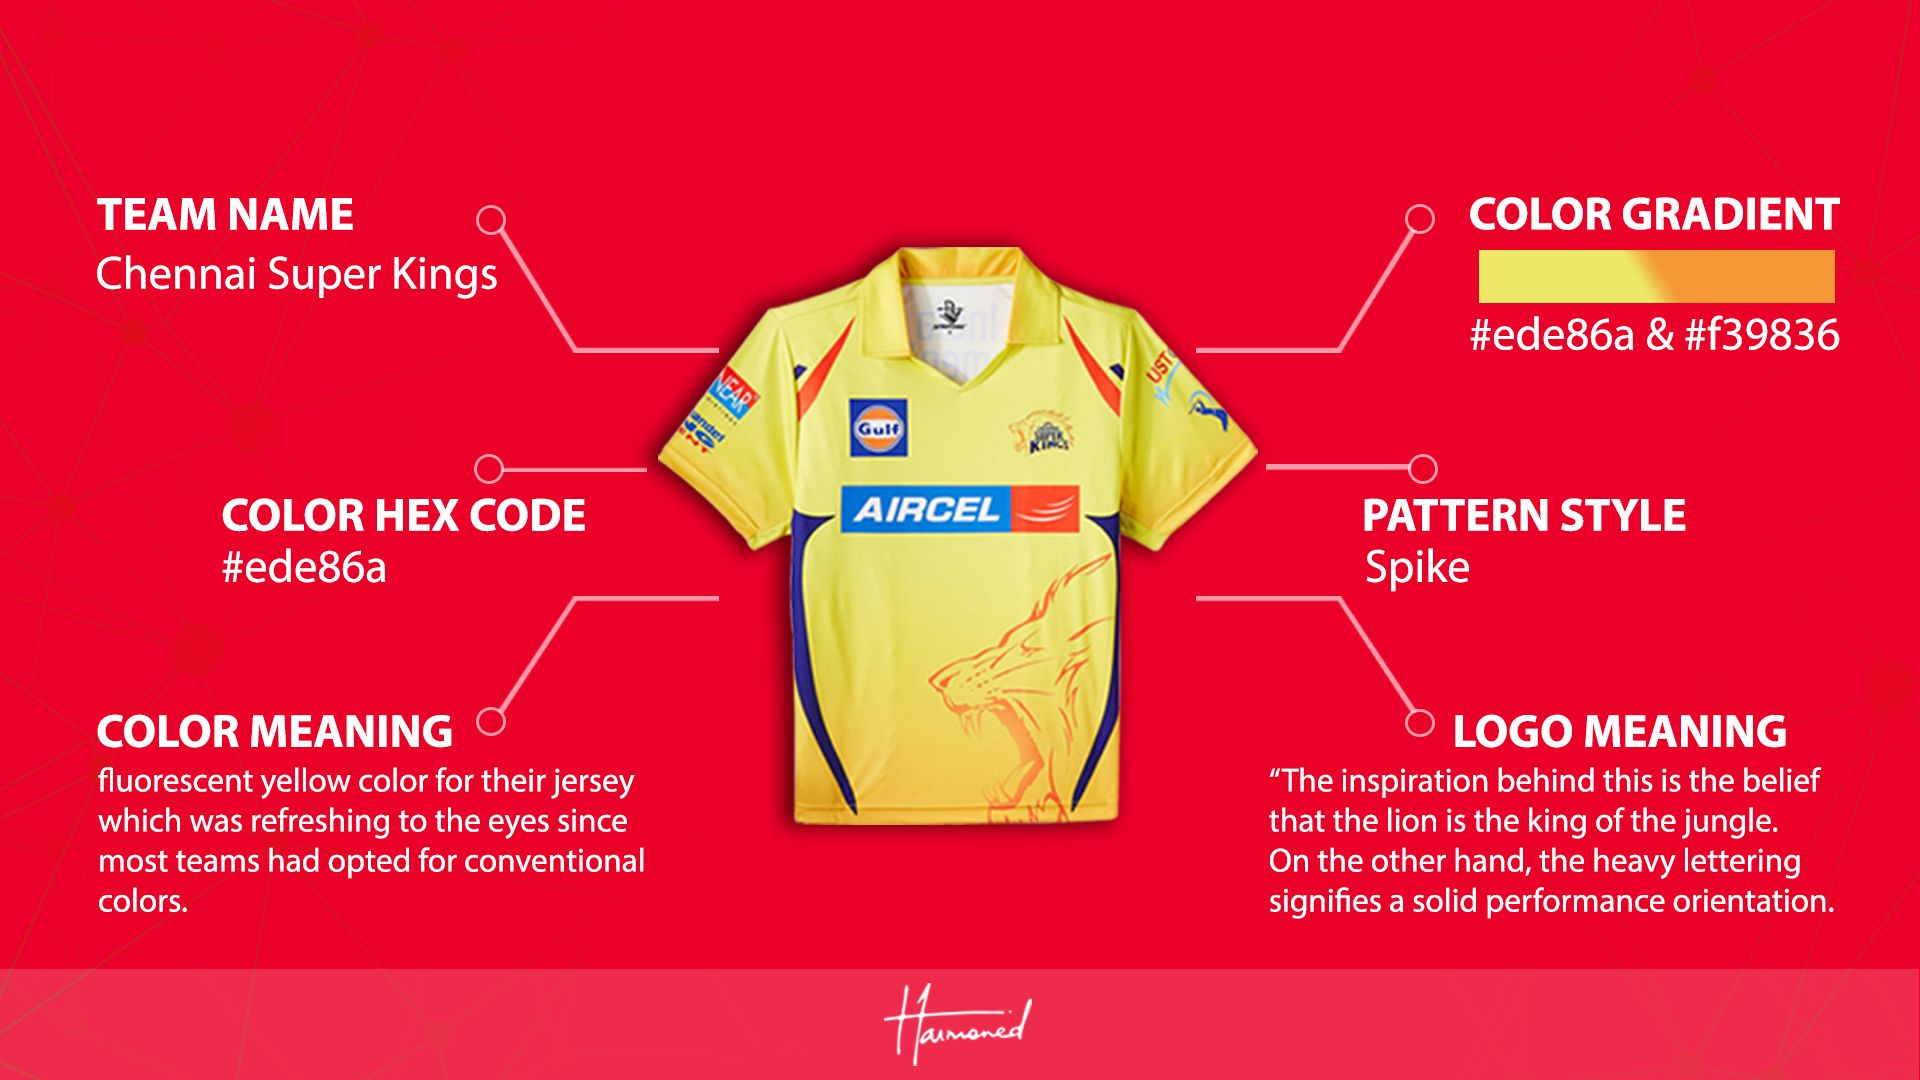 IPL JERSEY Integrated marketing communications